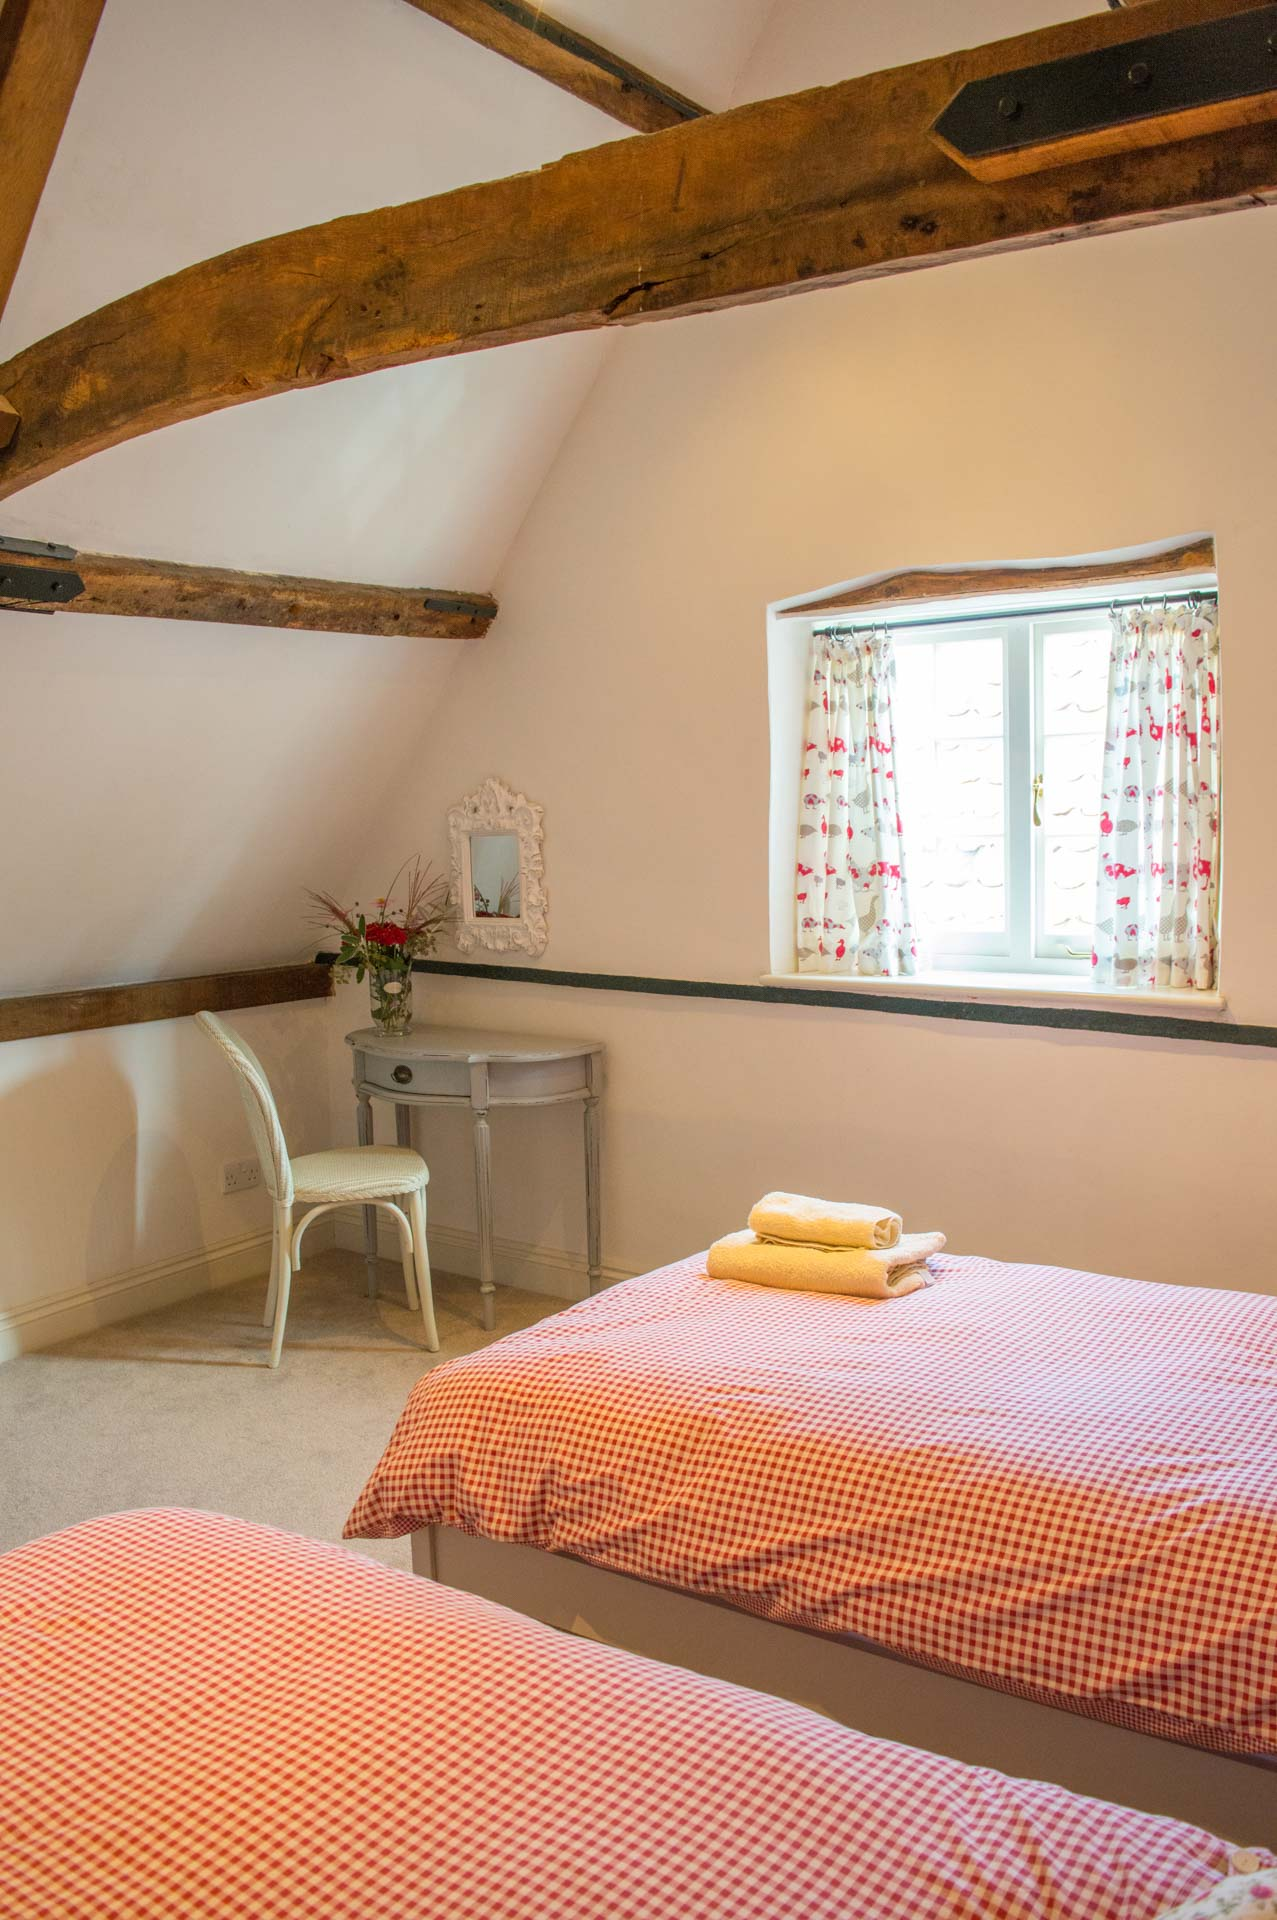 Twin single beds for 2 guests.